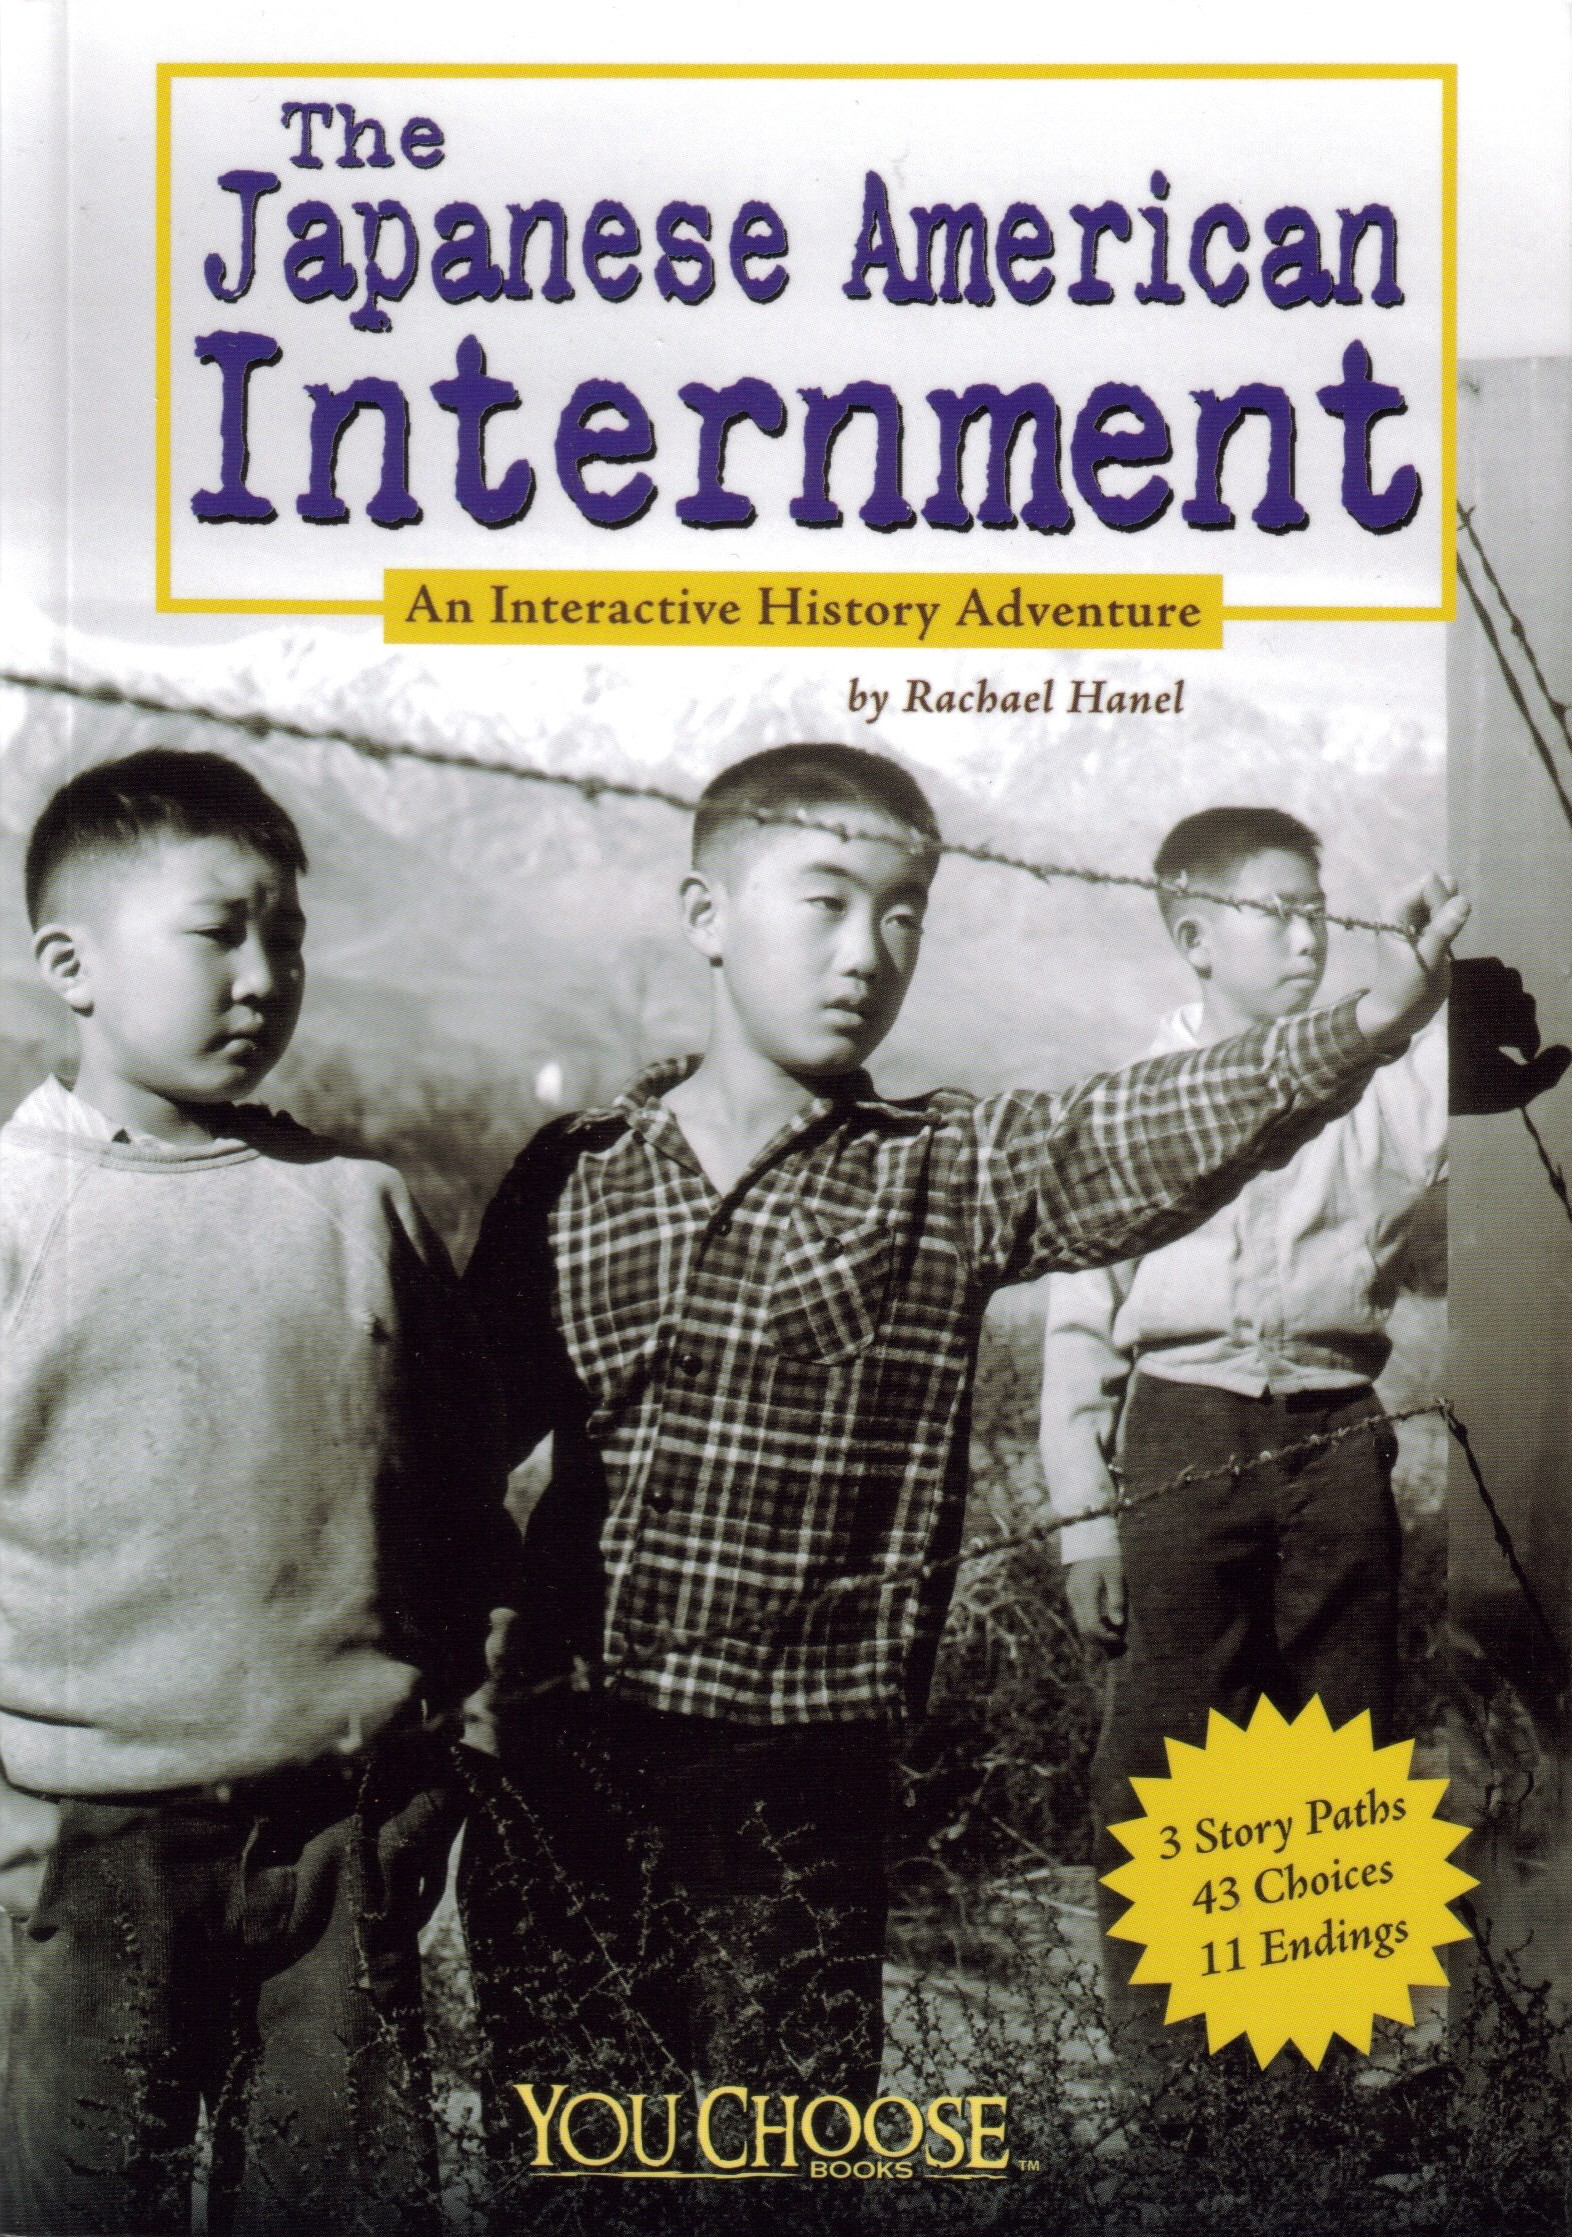 holocaust the japanese american internment essay Holocaust vs japanese internment camps essay in comparison between the two events of that of the holocaust and of the japanese internment camps japanese-american internment camps american japanese internment camps.